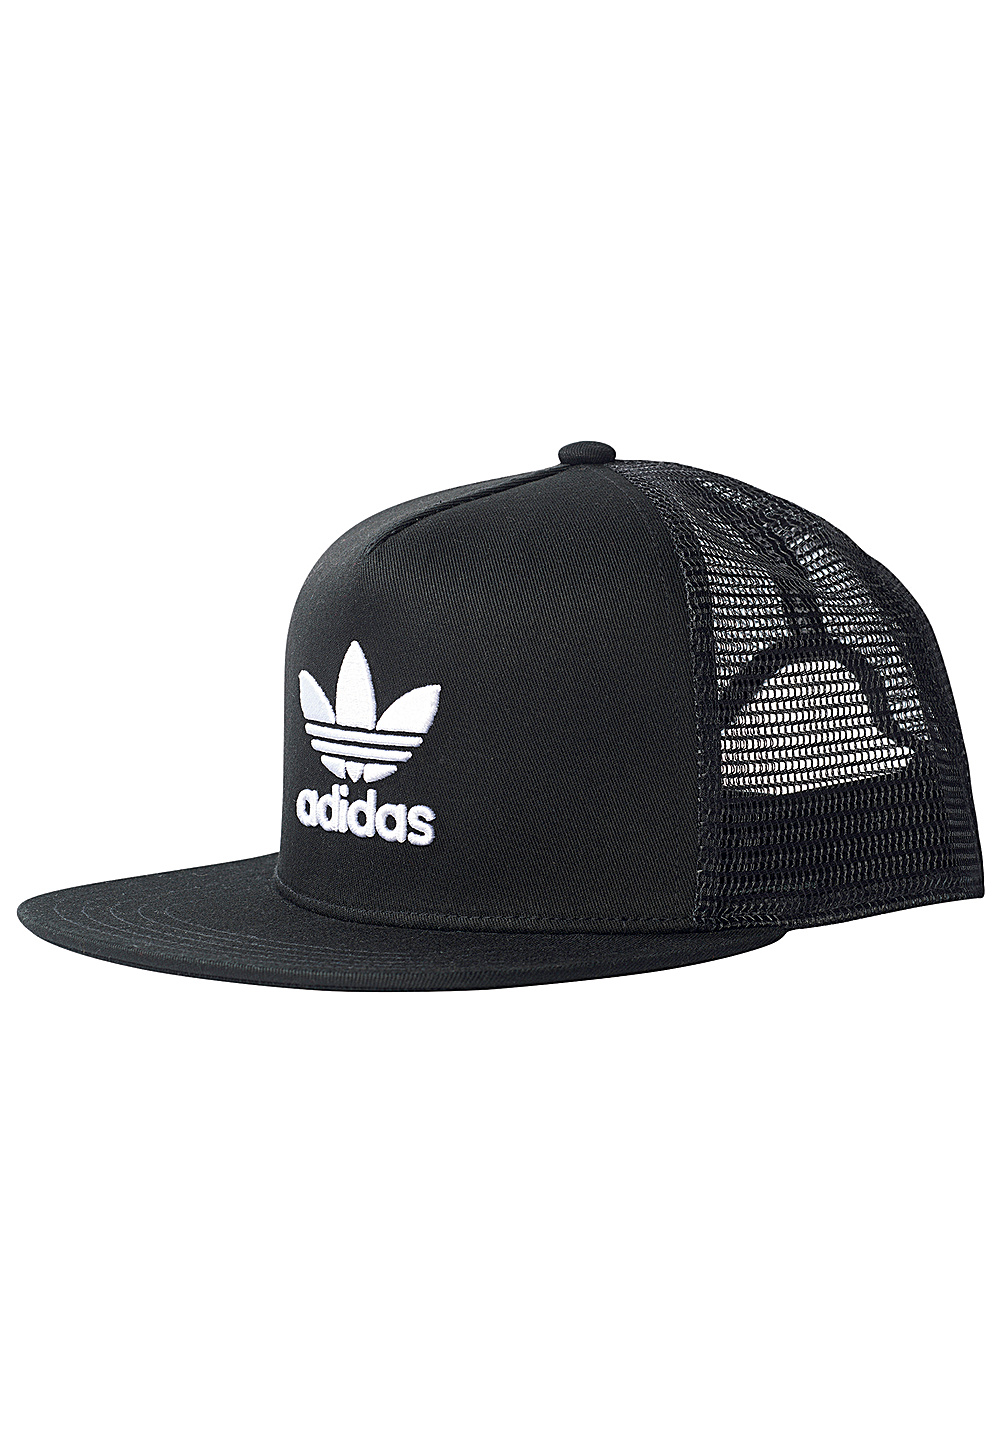 ADIDAS ORIGINALS Trefoil - Berretto da baseball - Nero - Planet Sports c03d6578d924